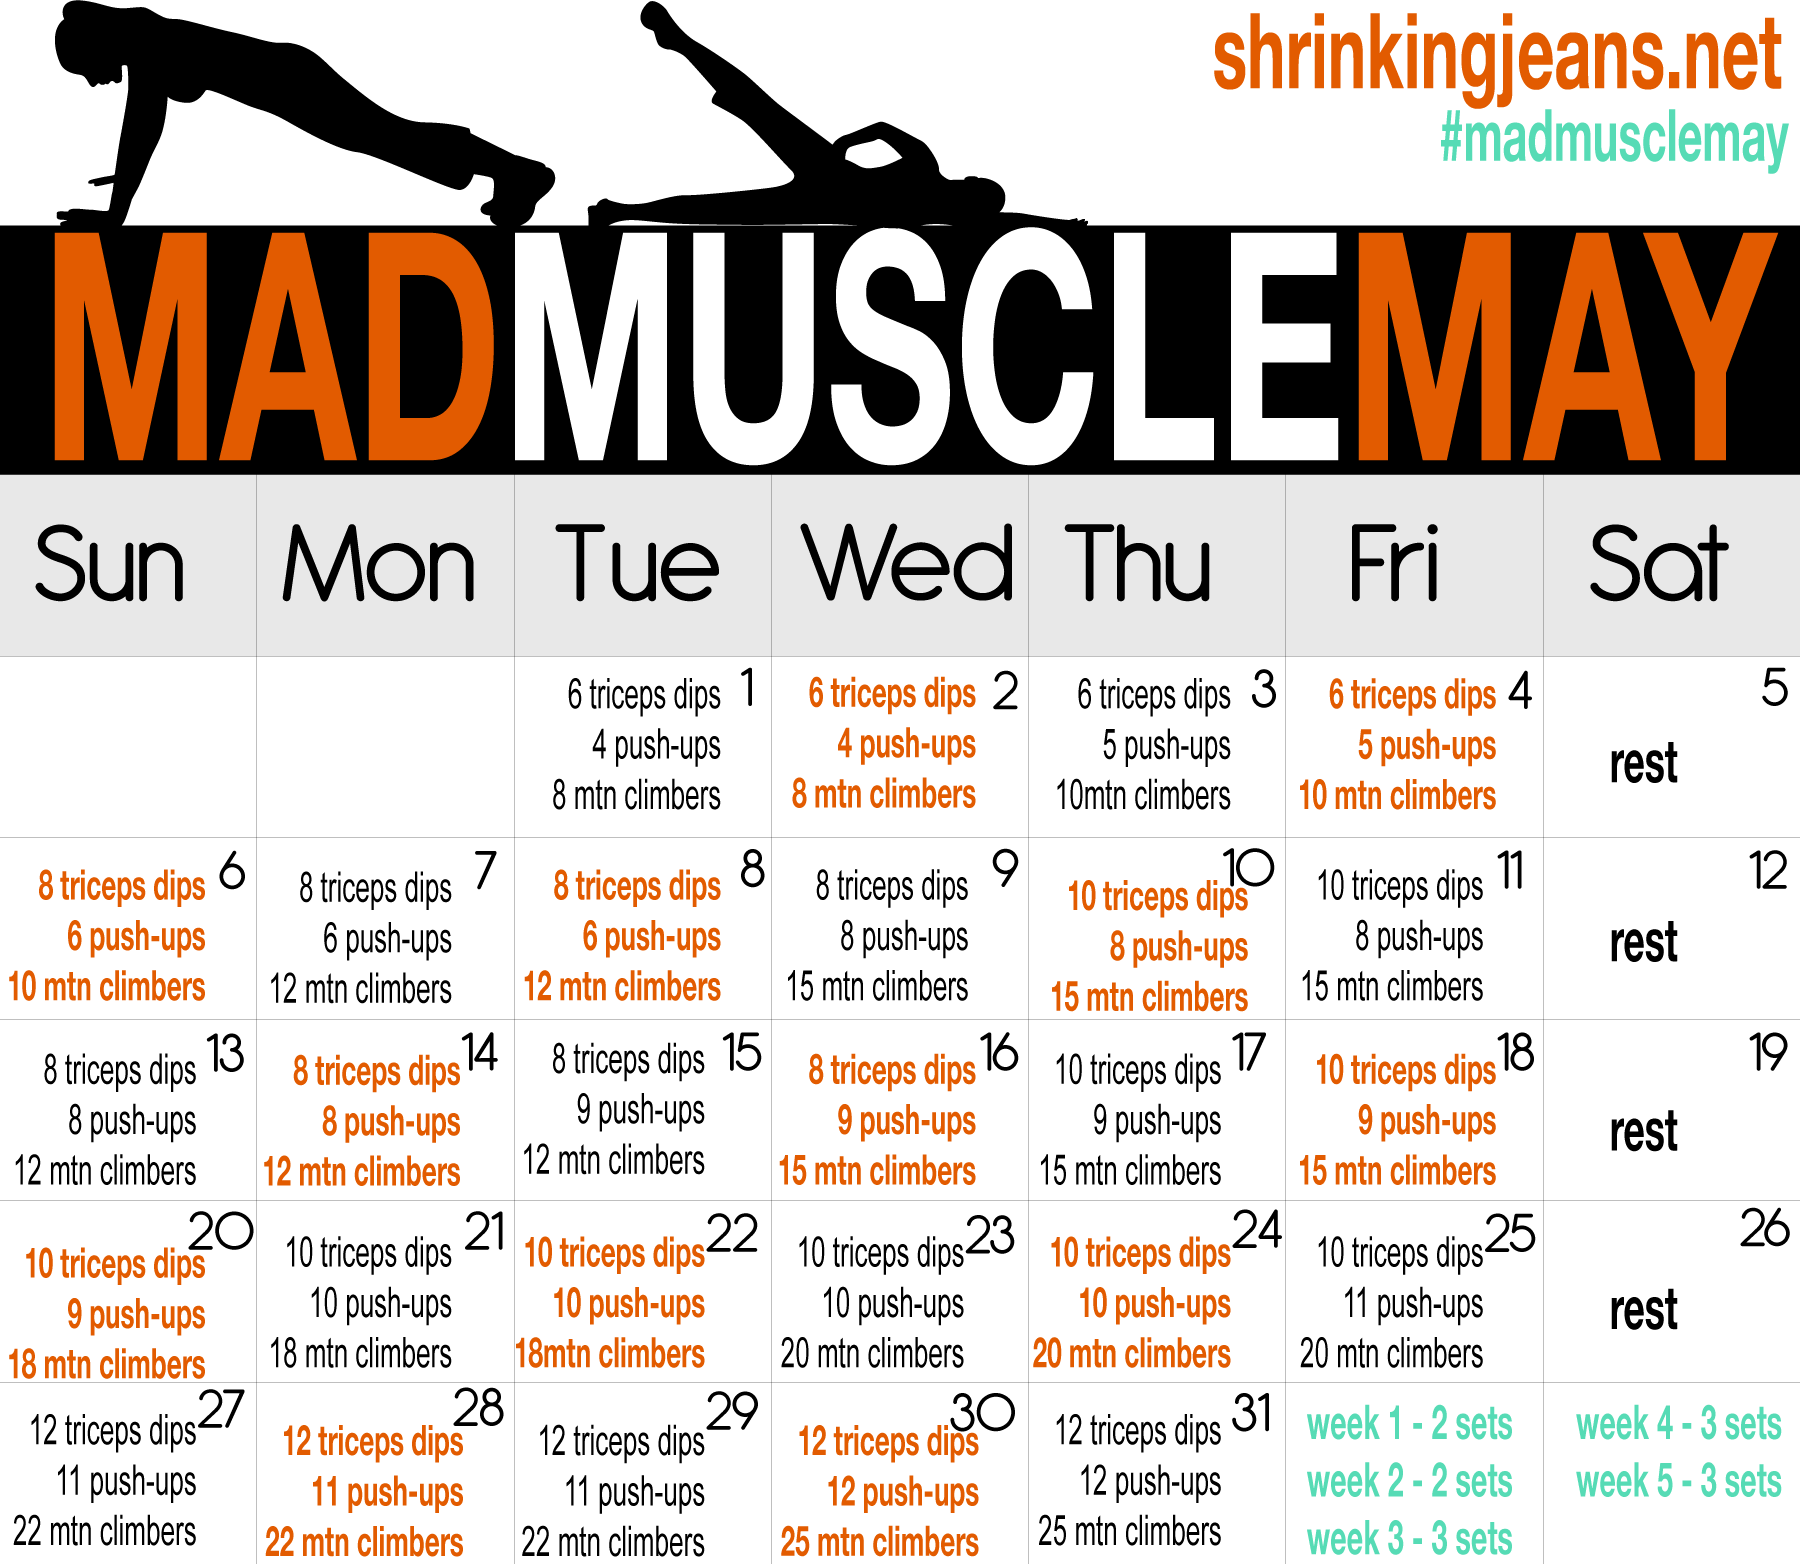 """MAD MUSCLE"" May workout calendar ~ working out your ARMS for sure!  (check out the list of other workout calendars here: http://shrinkingjeans.net/category/move-it/monthly-workout-calendar/)"